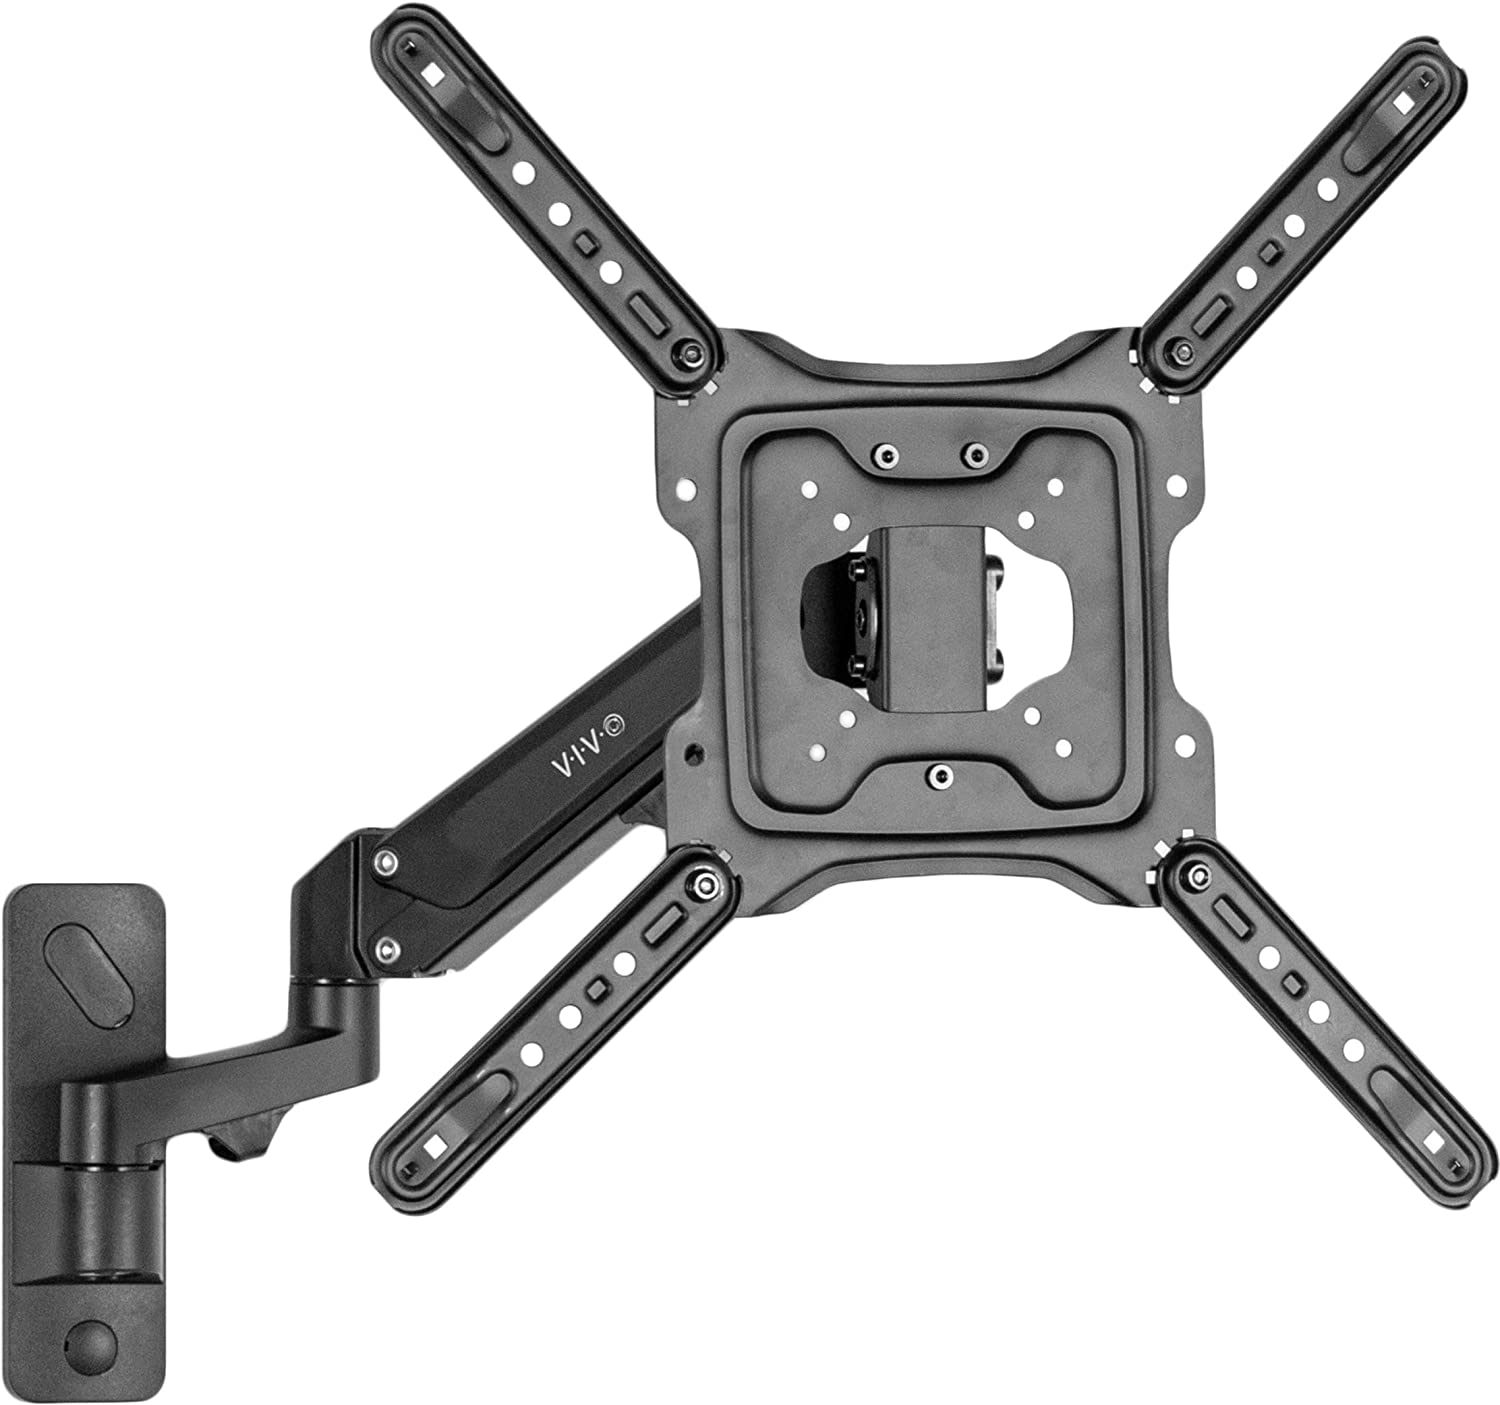 VIVO Premium Aluminum Single TV Wall Mount for 23 to 55 inch Screens, Adjustable Arm, Fits up to VESA 400x400 (MOUNT-G400B)